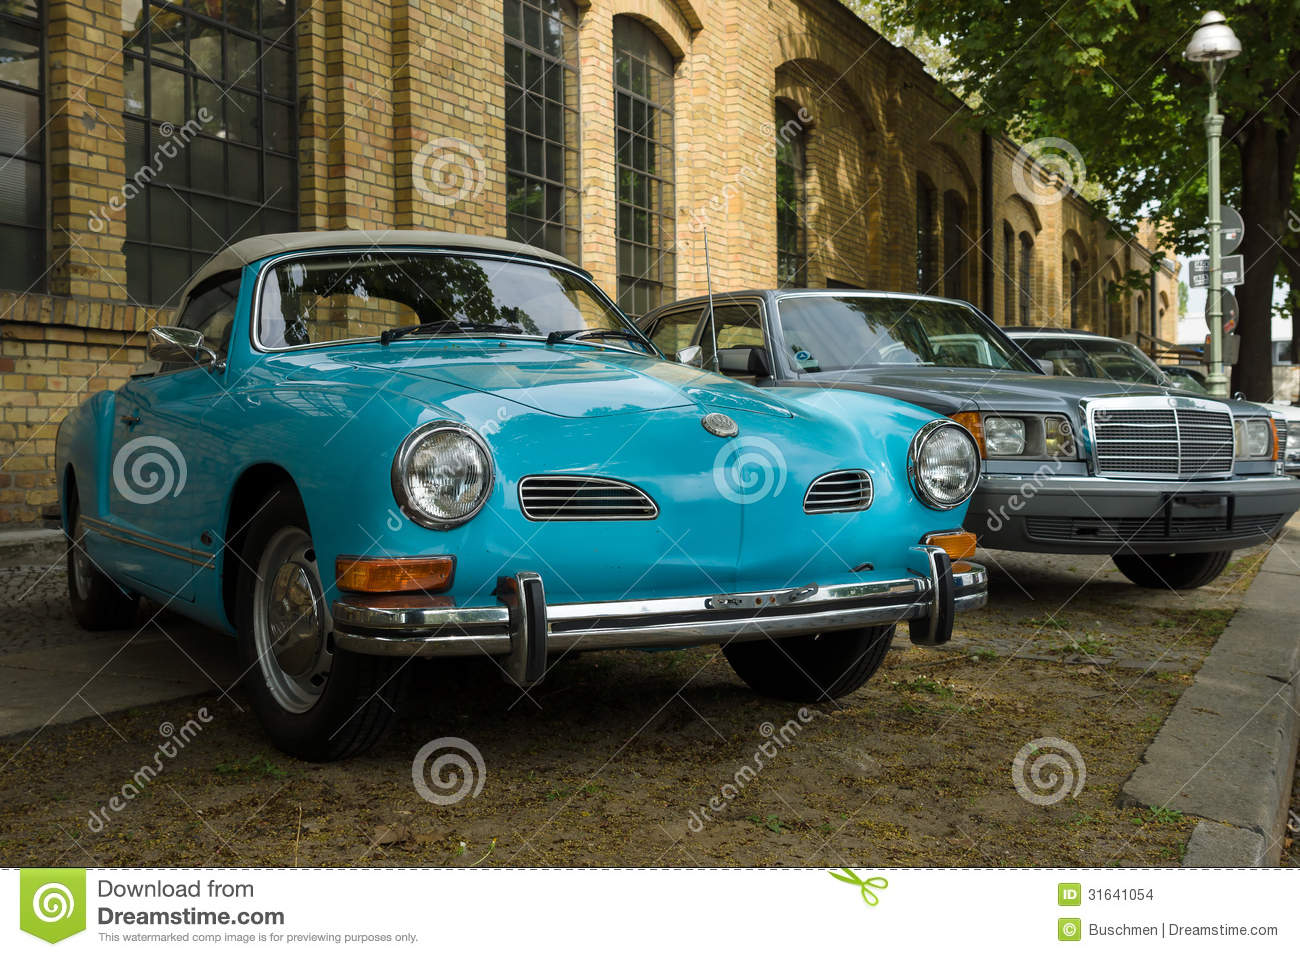 car volkswagen karmann ghia foreground and the mercedes. Black Bedroom Furniture Sets. Home Design Ideas